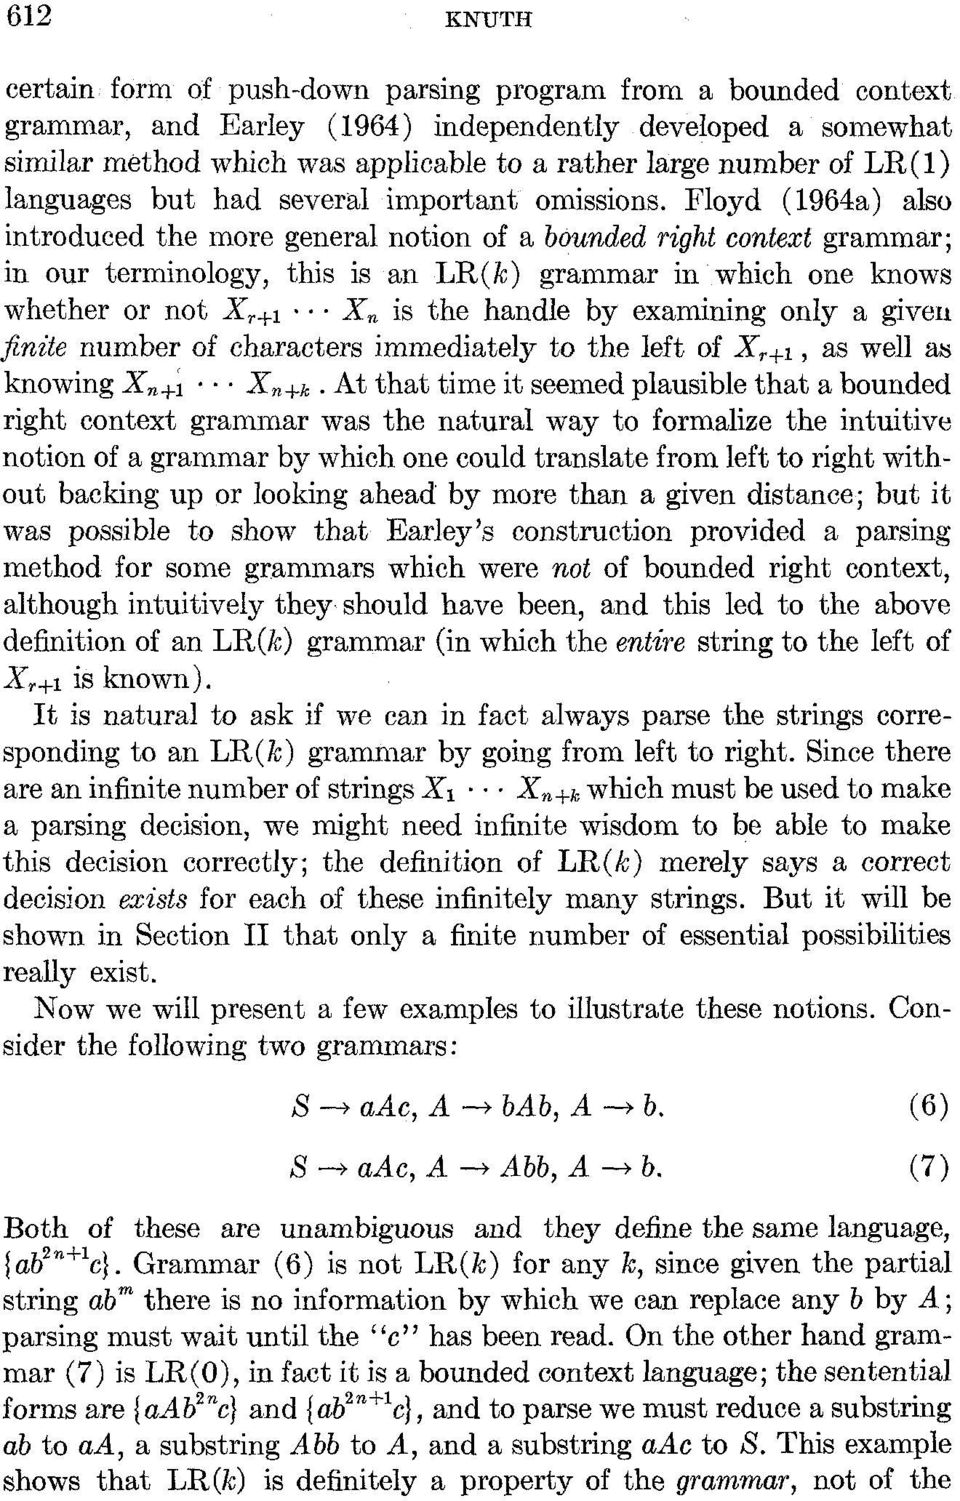 Floyd (1964a) also introduced the more general notion of a bounded right context grammar; in our terminology, this is an LR(k) grammar in which one knows whether or not Xr+1.